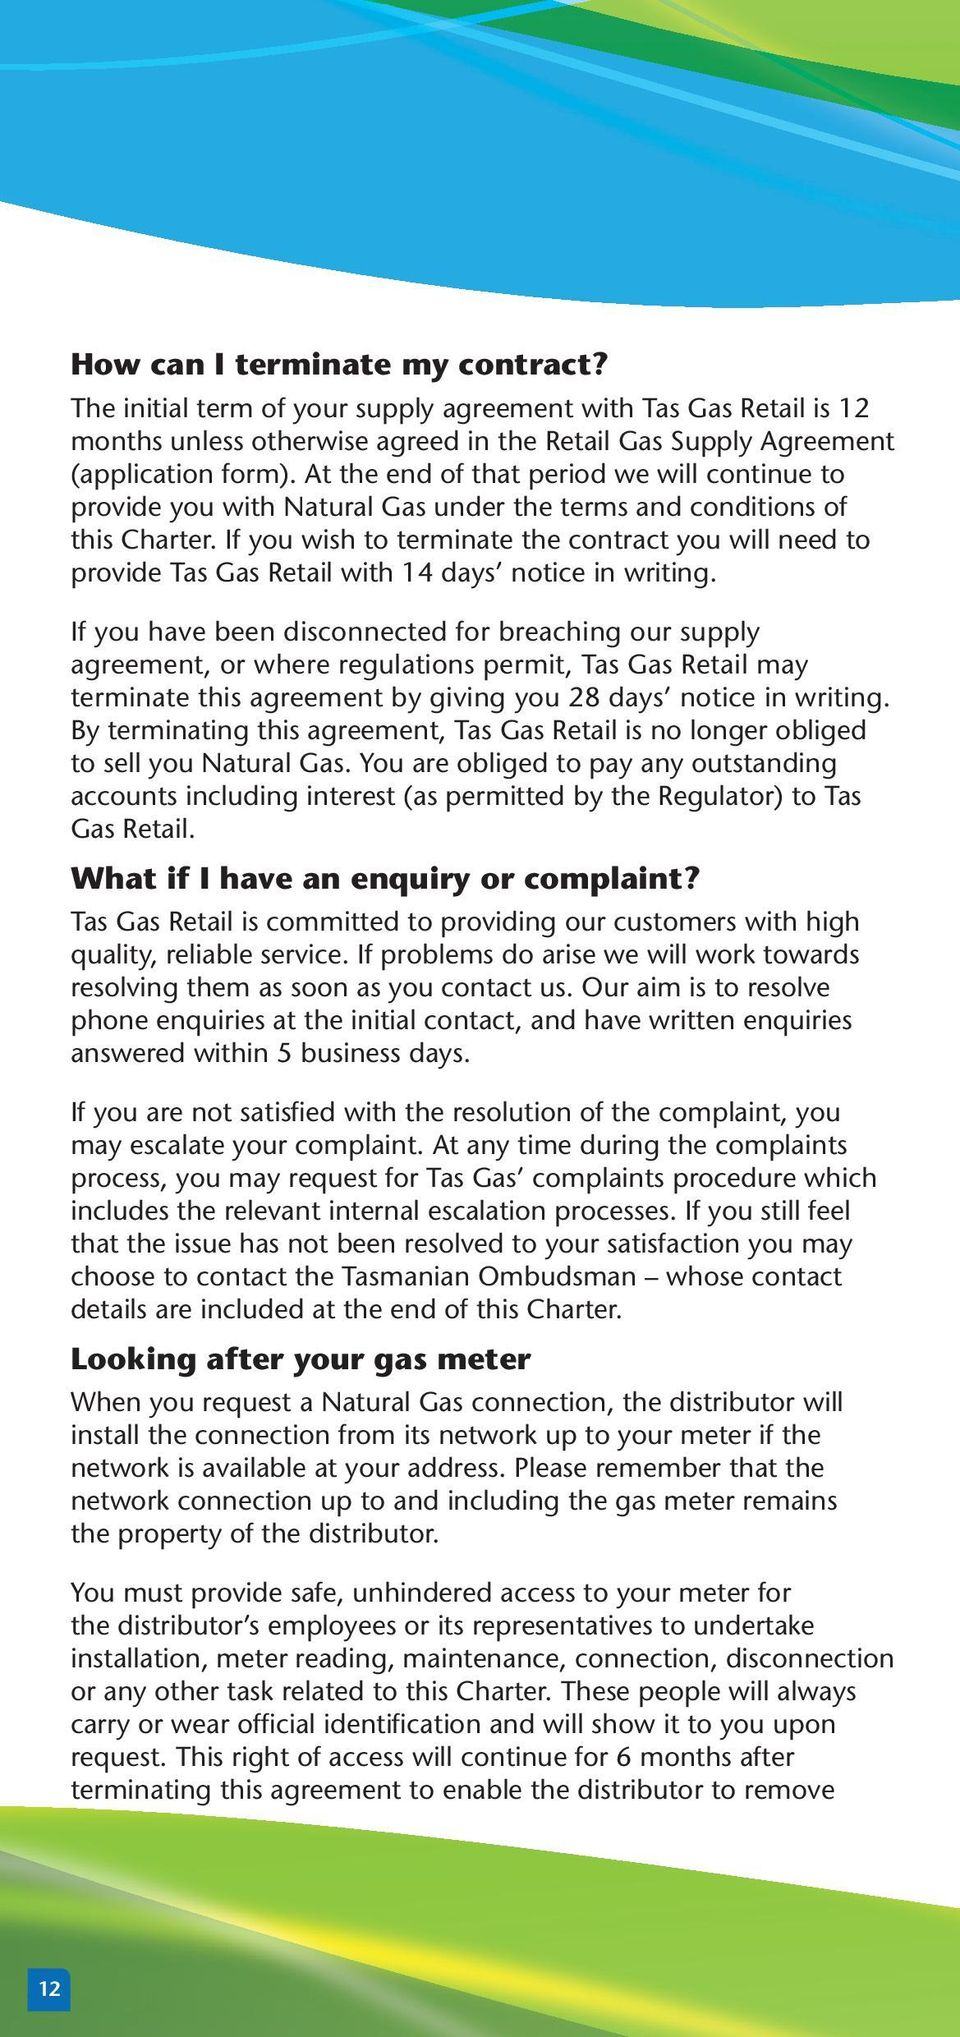 If you wish to terminate the contract you will need to provide Tas Gas Retail with 14 days notice in writing.